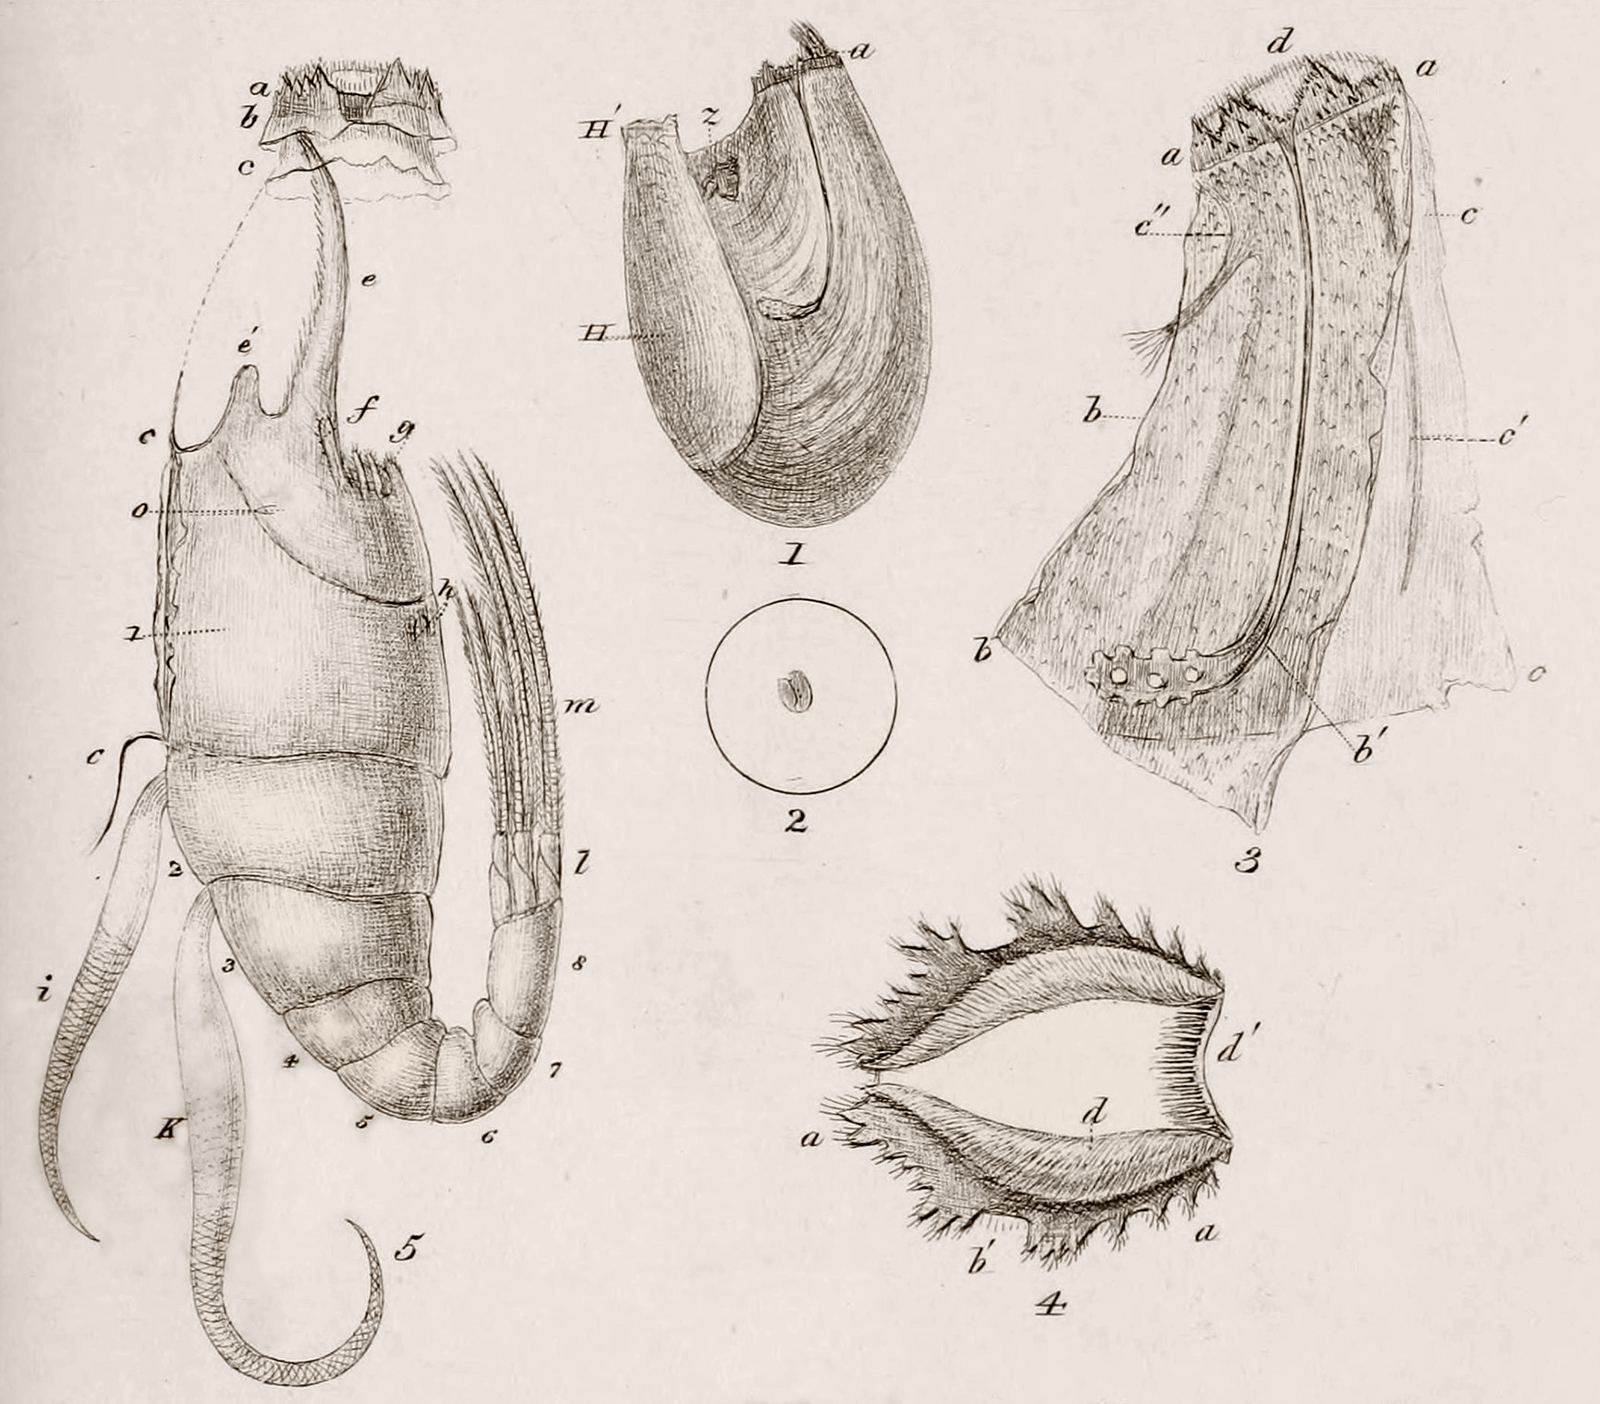 Antique anatomical line drawings